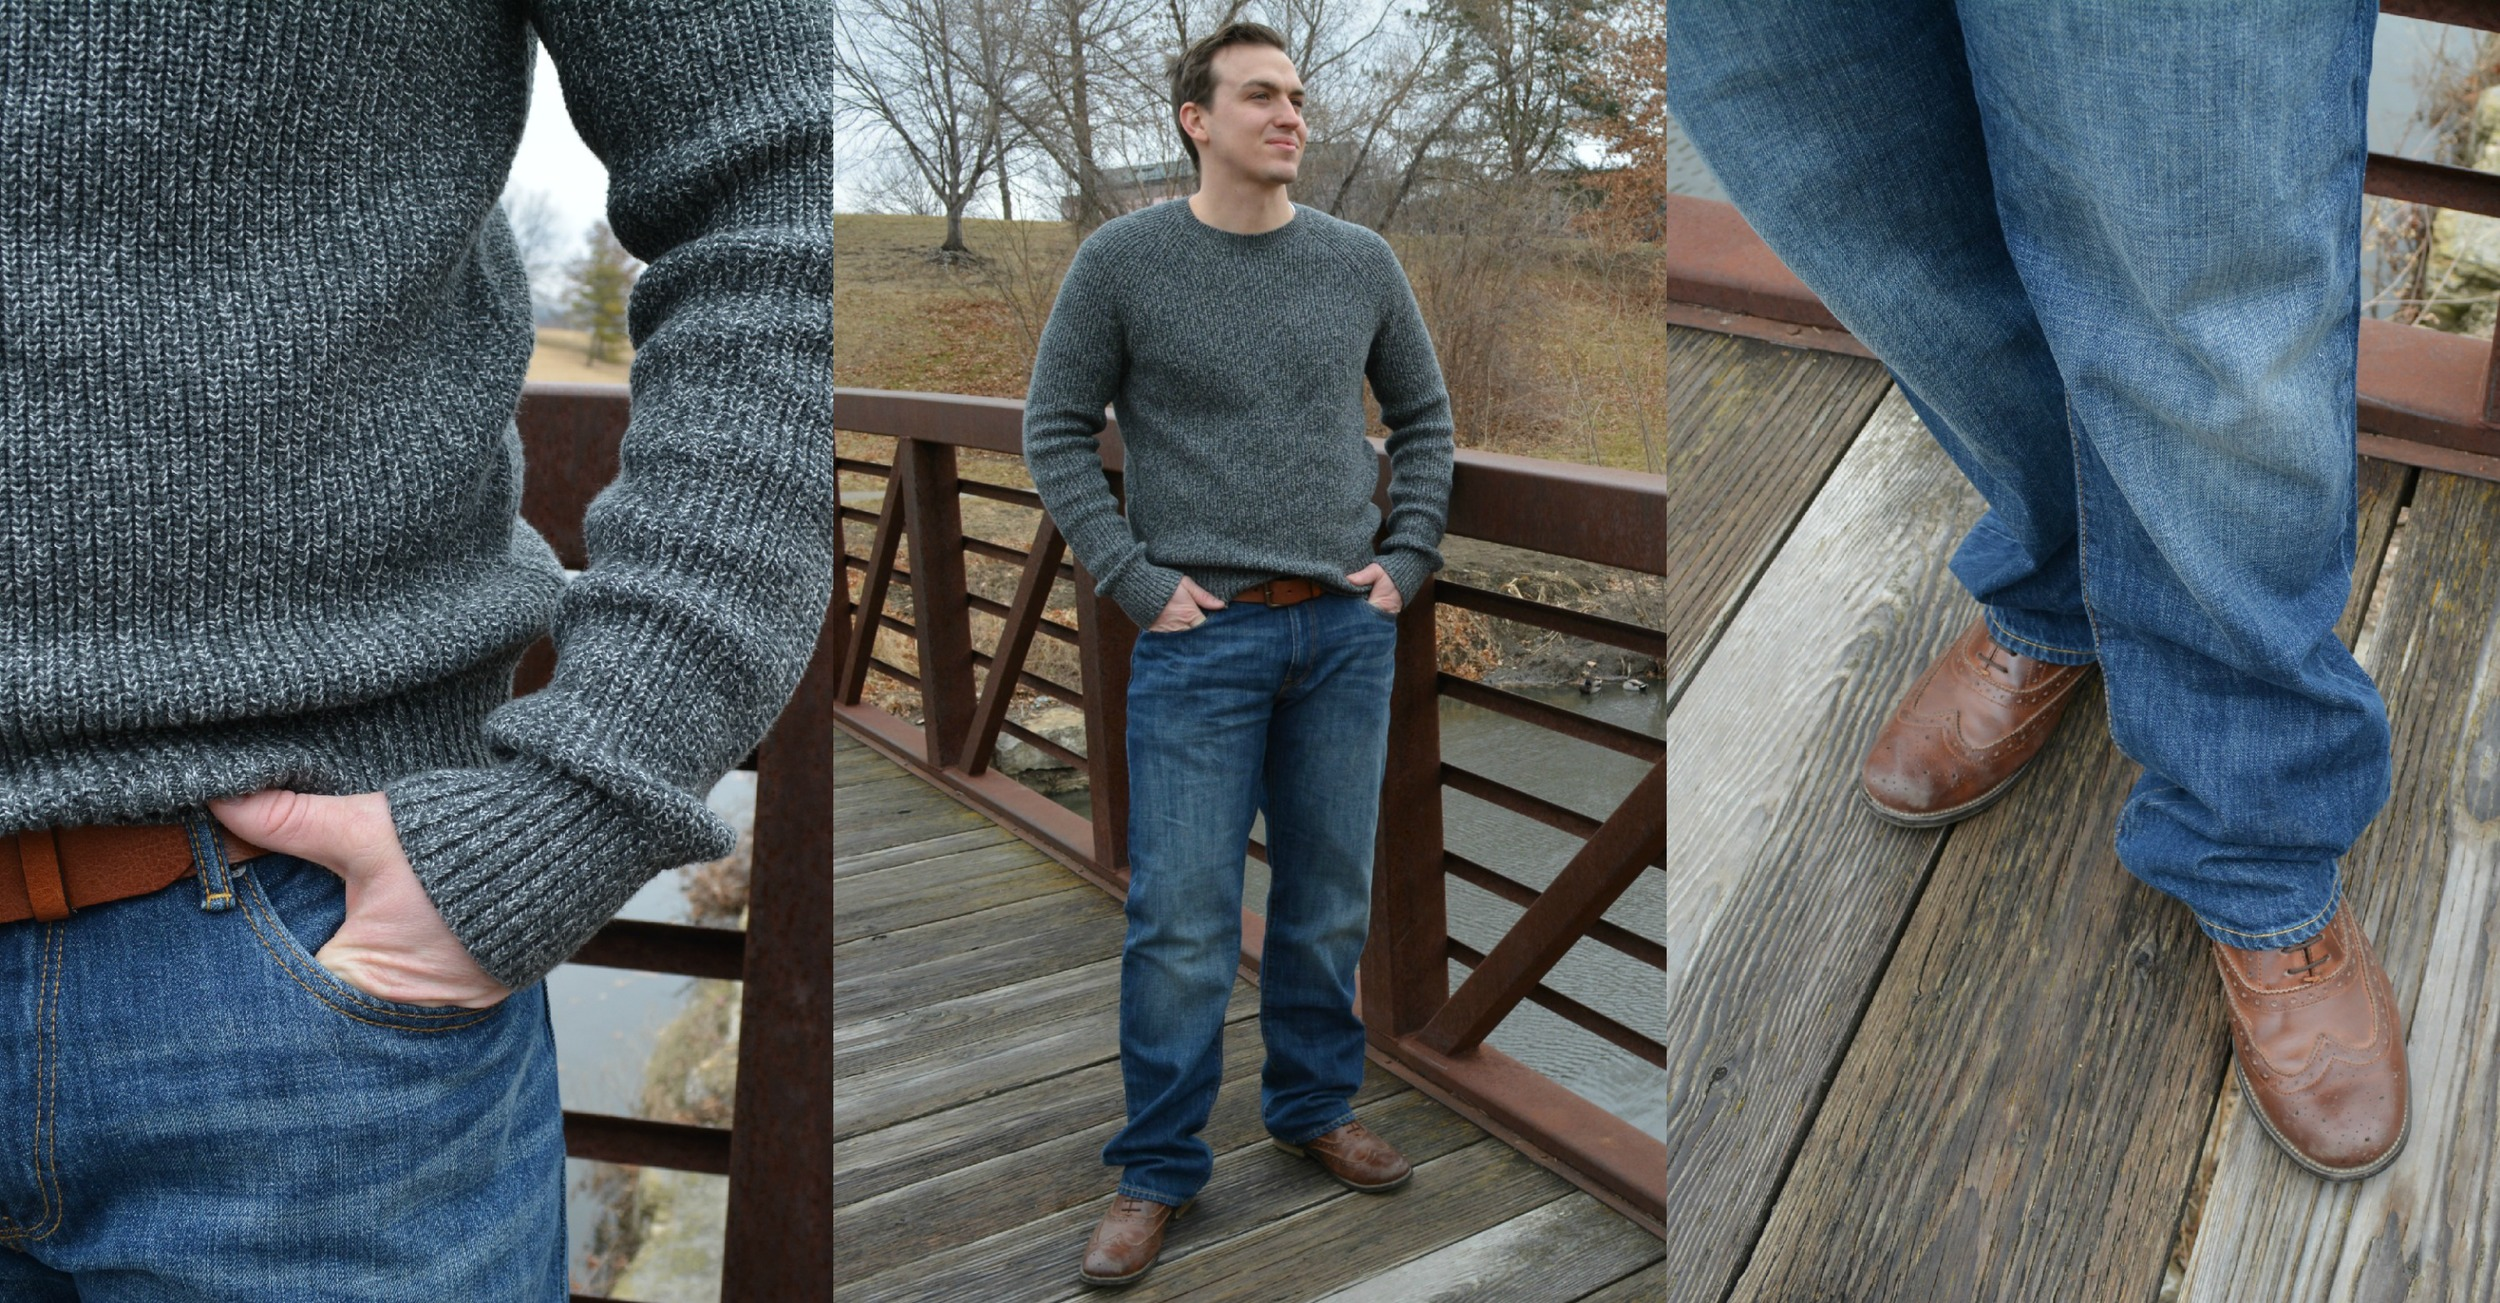 Gap at Town Center Plaza:    Marled Crewneck Sweater   ,    1969 Straight Fit Jeans, Belt   , and Shoes (Kevin's)